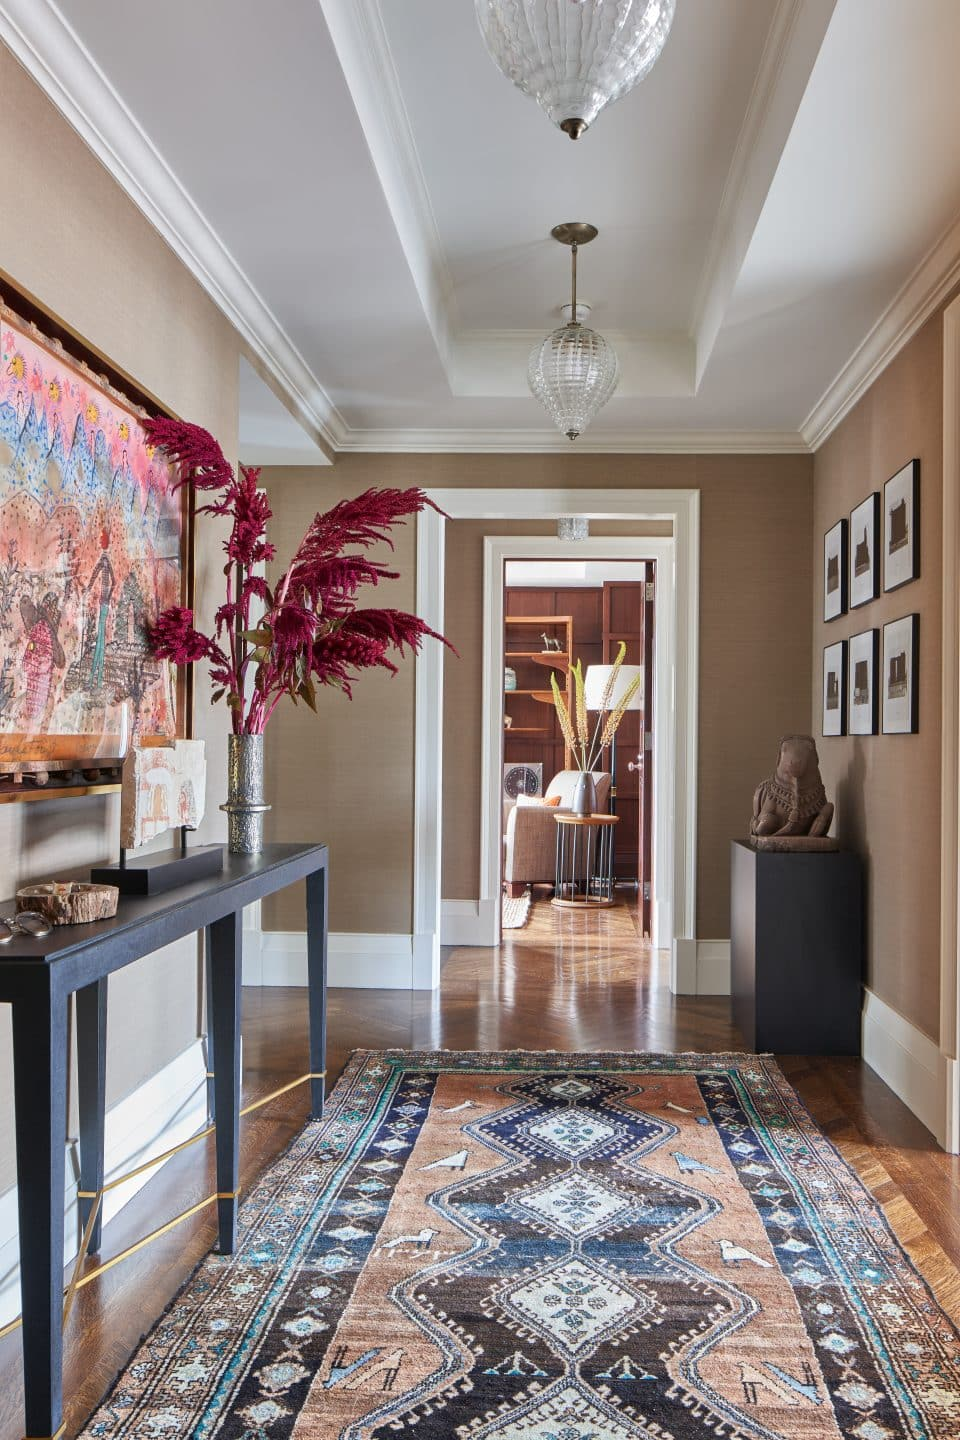 Tour an Upper East Side Triplex Where Sophistication Meets Playfulness